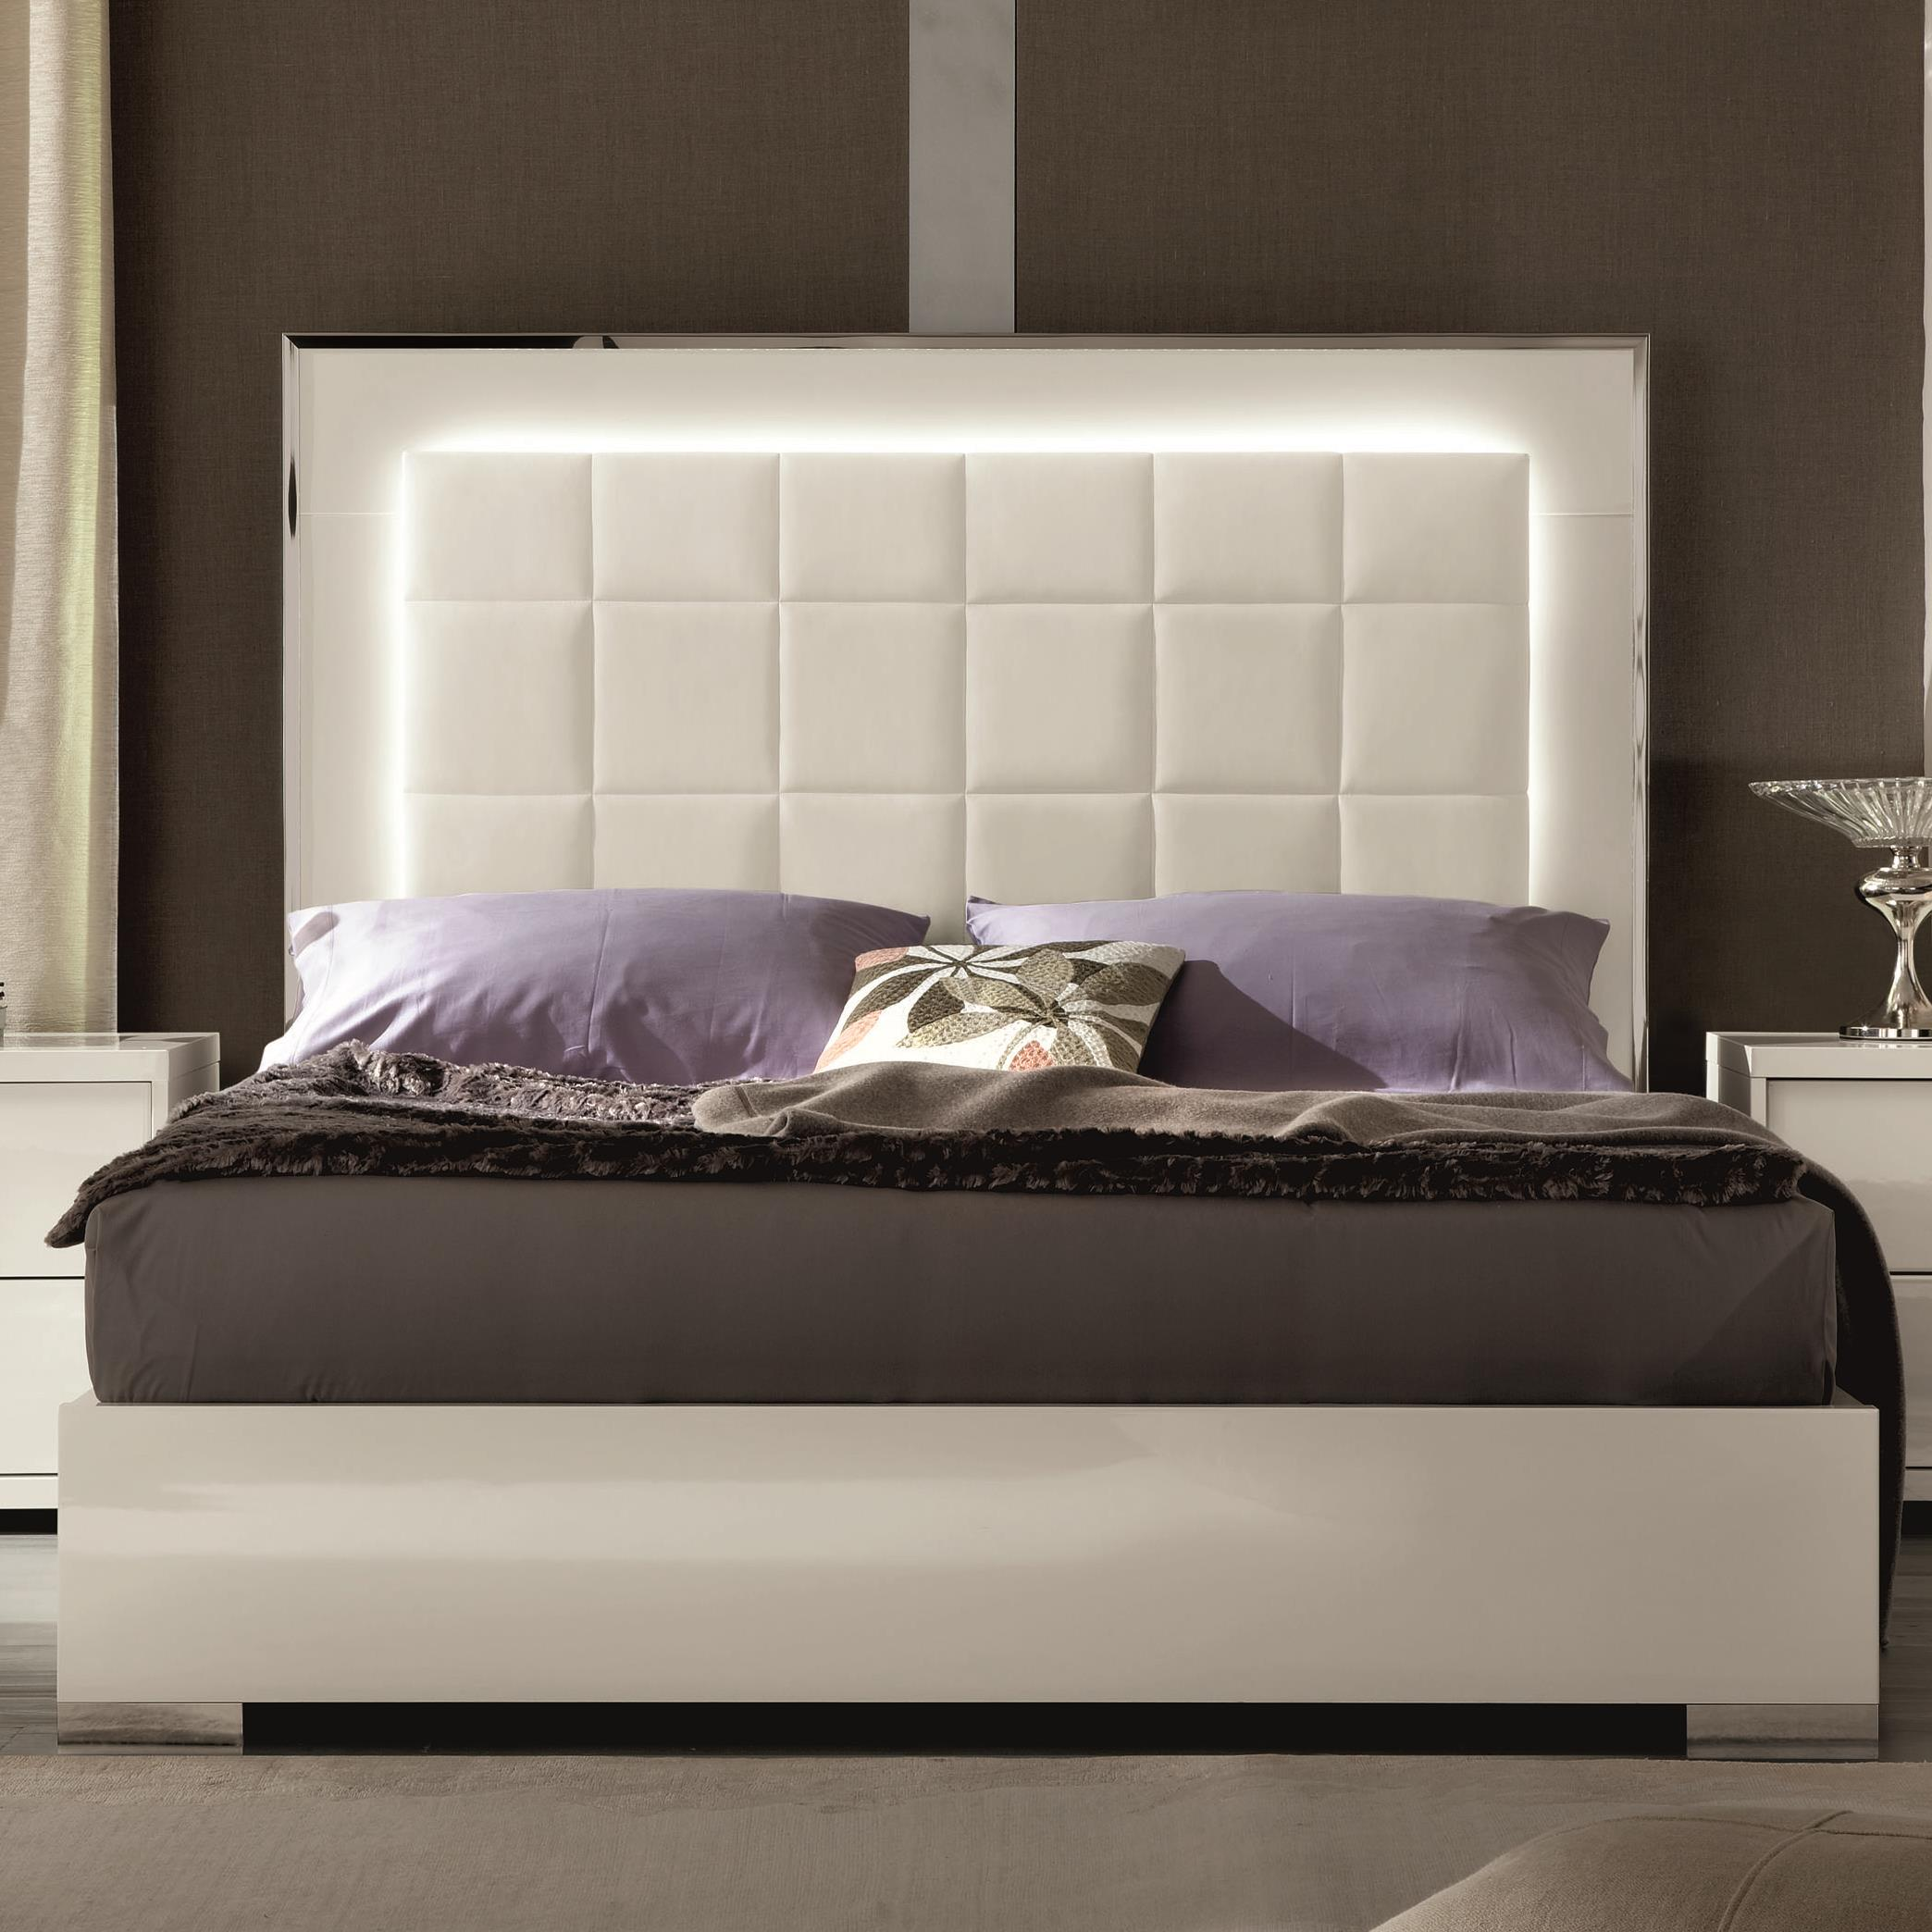 Queen Upholstered Bed with LED Lights